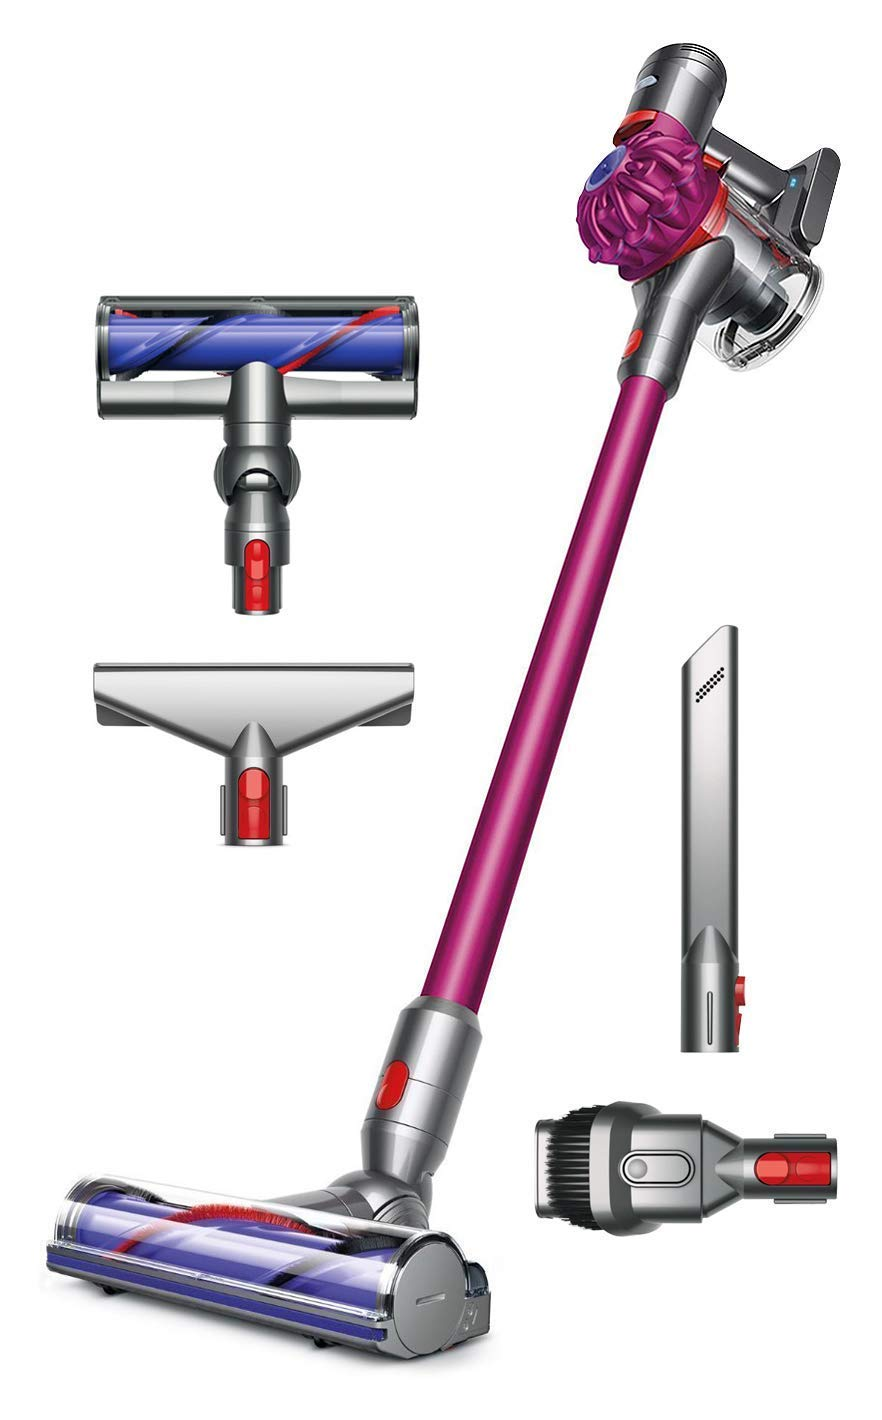 Dyson V7 Motorhead Cordless Vacuum Cleaner + Manufacturer's Warranty + Mattress Tool Bundle